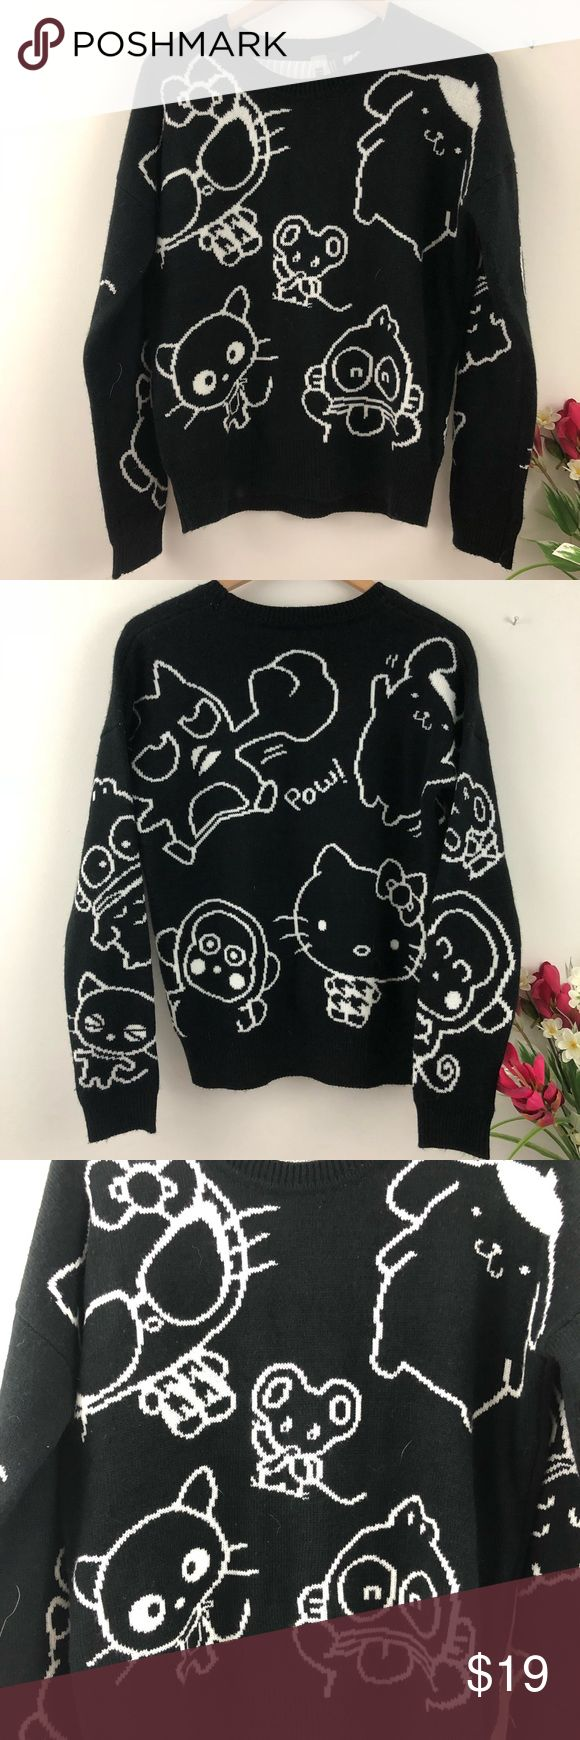 Forever 21 Sanrio Hello Kitty Thick Sweater Thick knit double layered sweater from Forever 21. Solid black background with Sanrio characters all over, including Hello Kitty. It's part of Forever 21's Collection Exclusive line. The black and white contrast nicely. It's in excellent, like new condition. The pit to pit and the length measurements are included in the last two pictures. (Location) {no trades - no modeling} Forever 21 Sweaters Crew & Scoop Necks